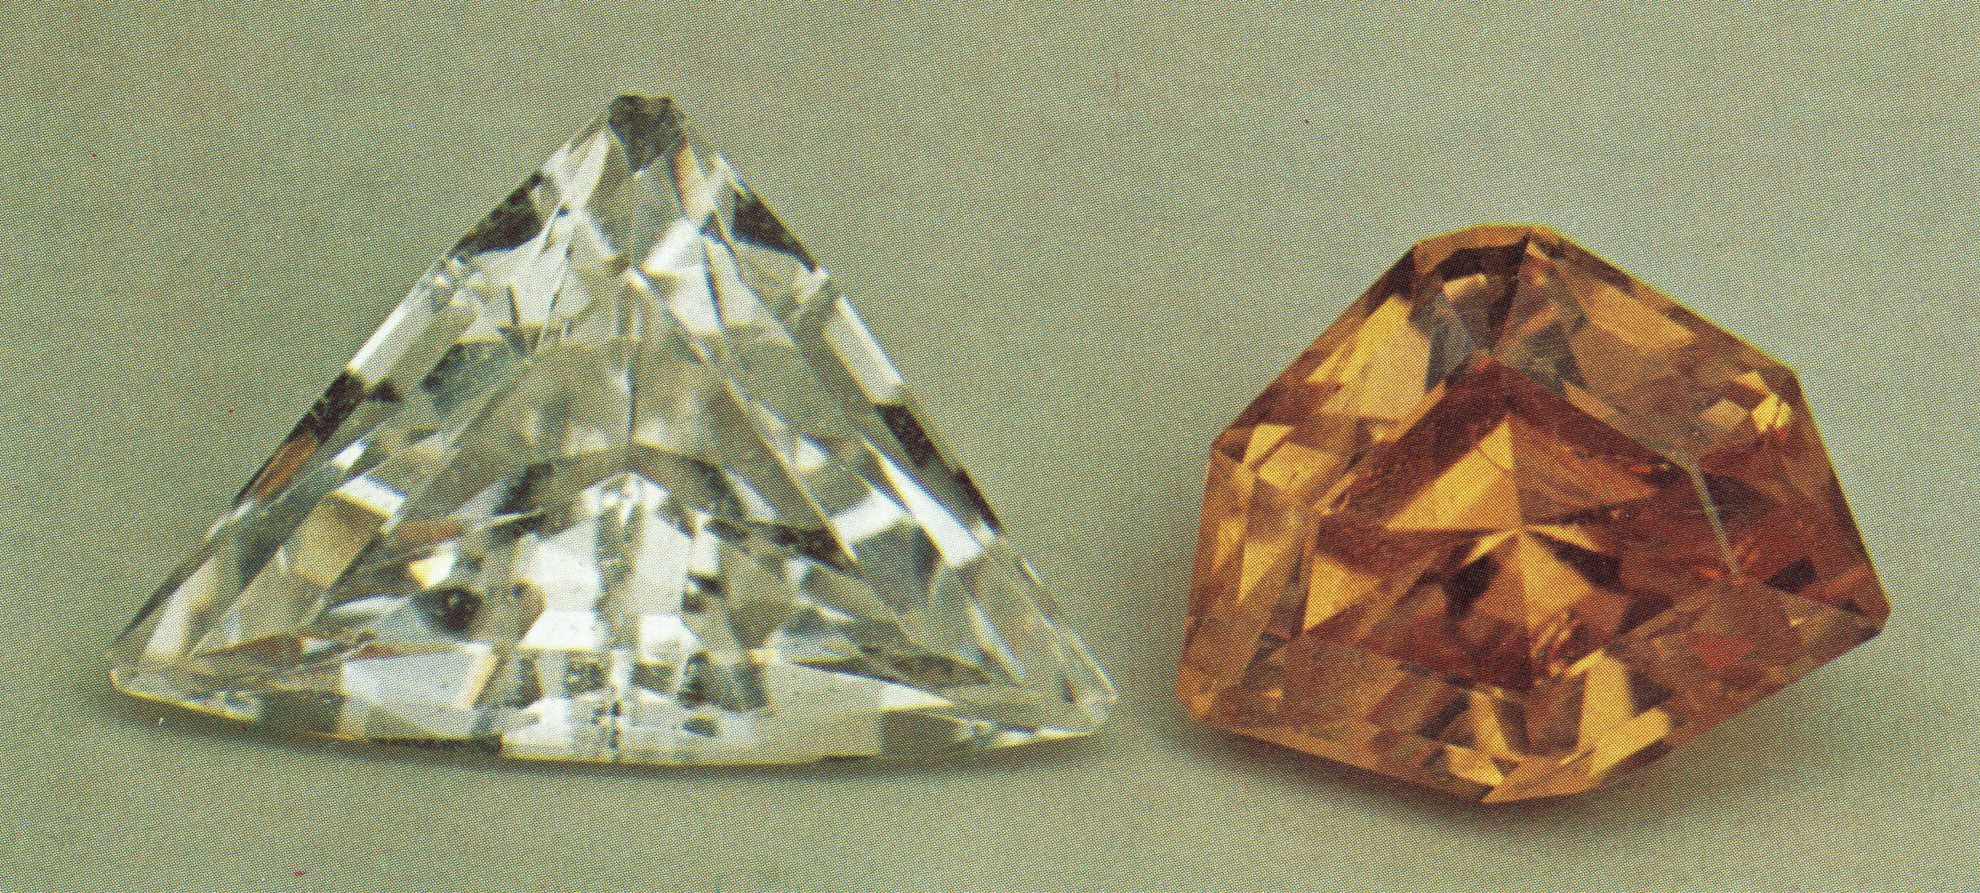 faceted scheelite gems - Arizona and California